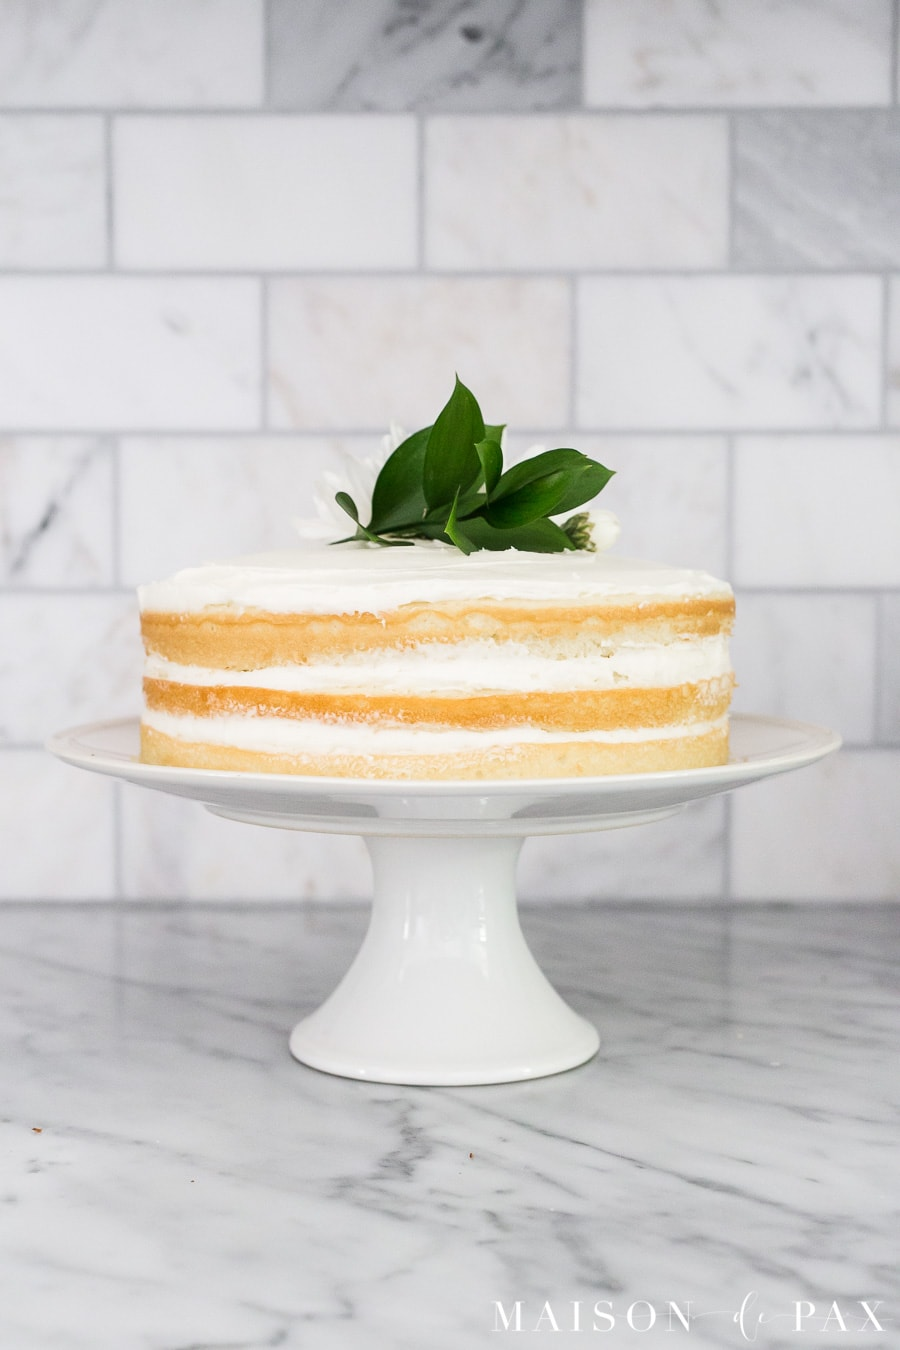 MAISON DE PAX tips easy naked cake